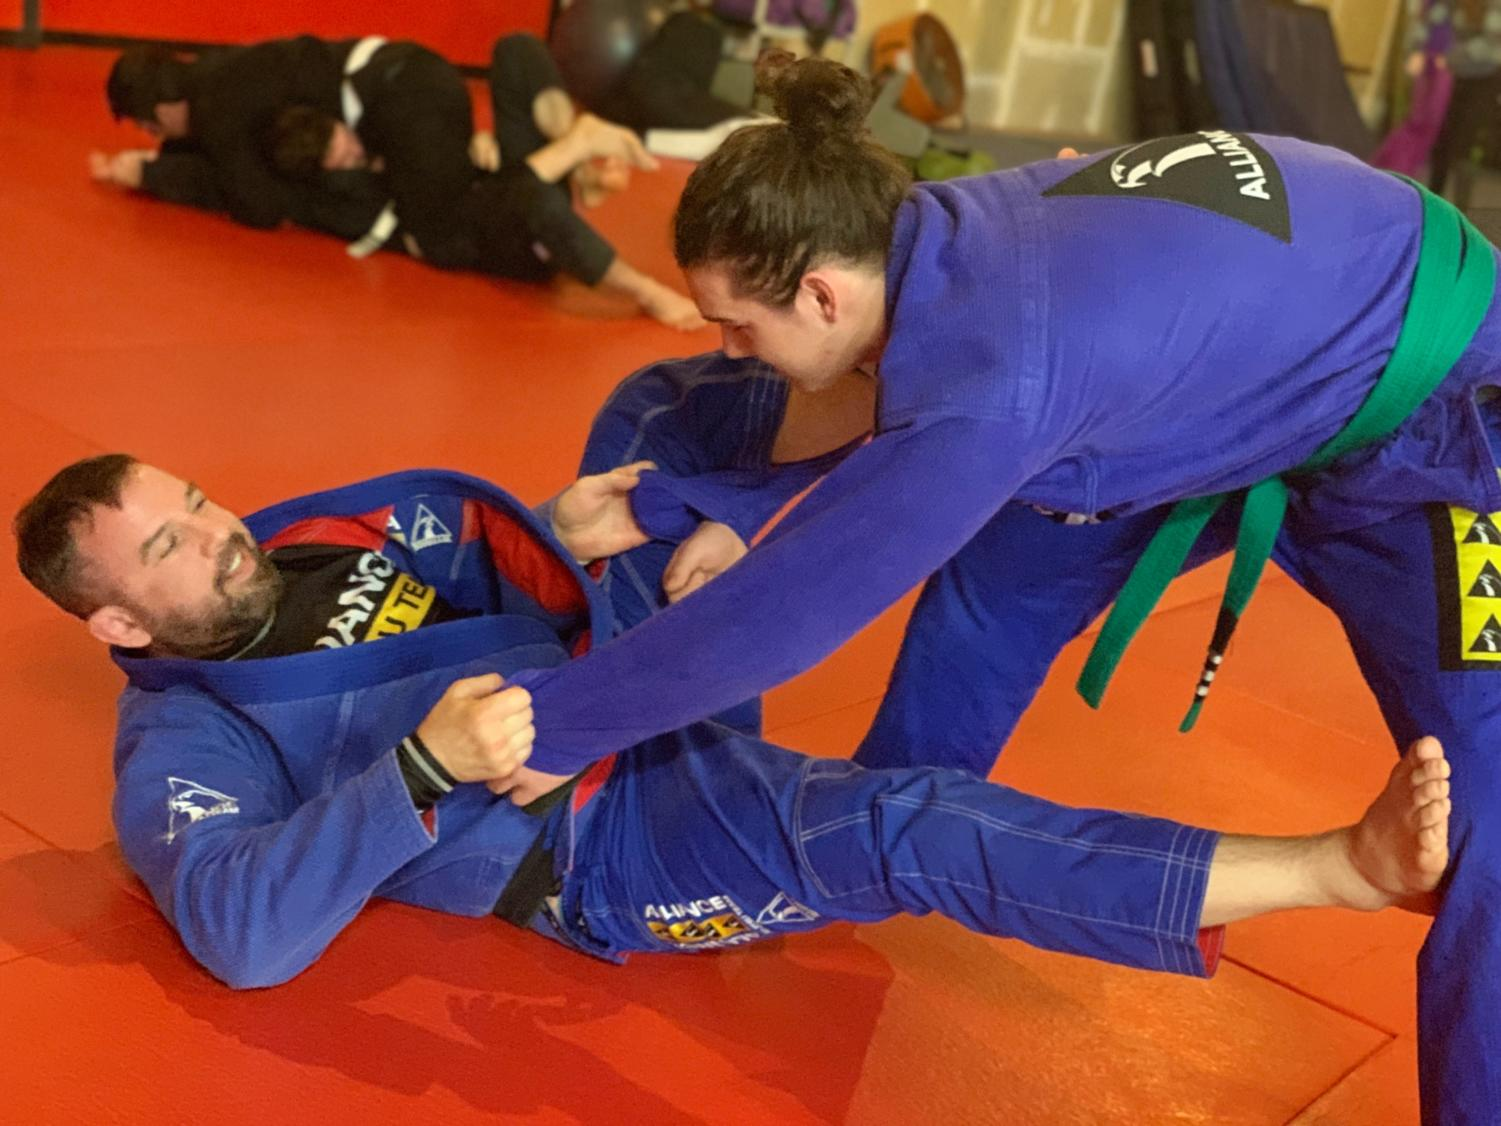 During practice, Merrick Miller spars with his instructor, Alex Sensei, at the Midtown Grappling Academy.